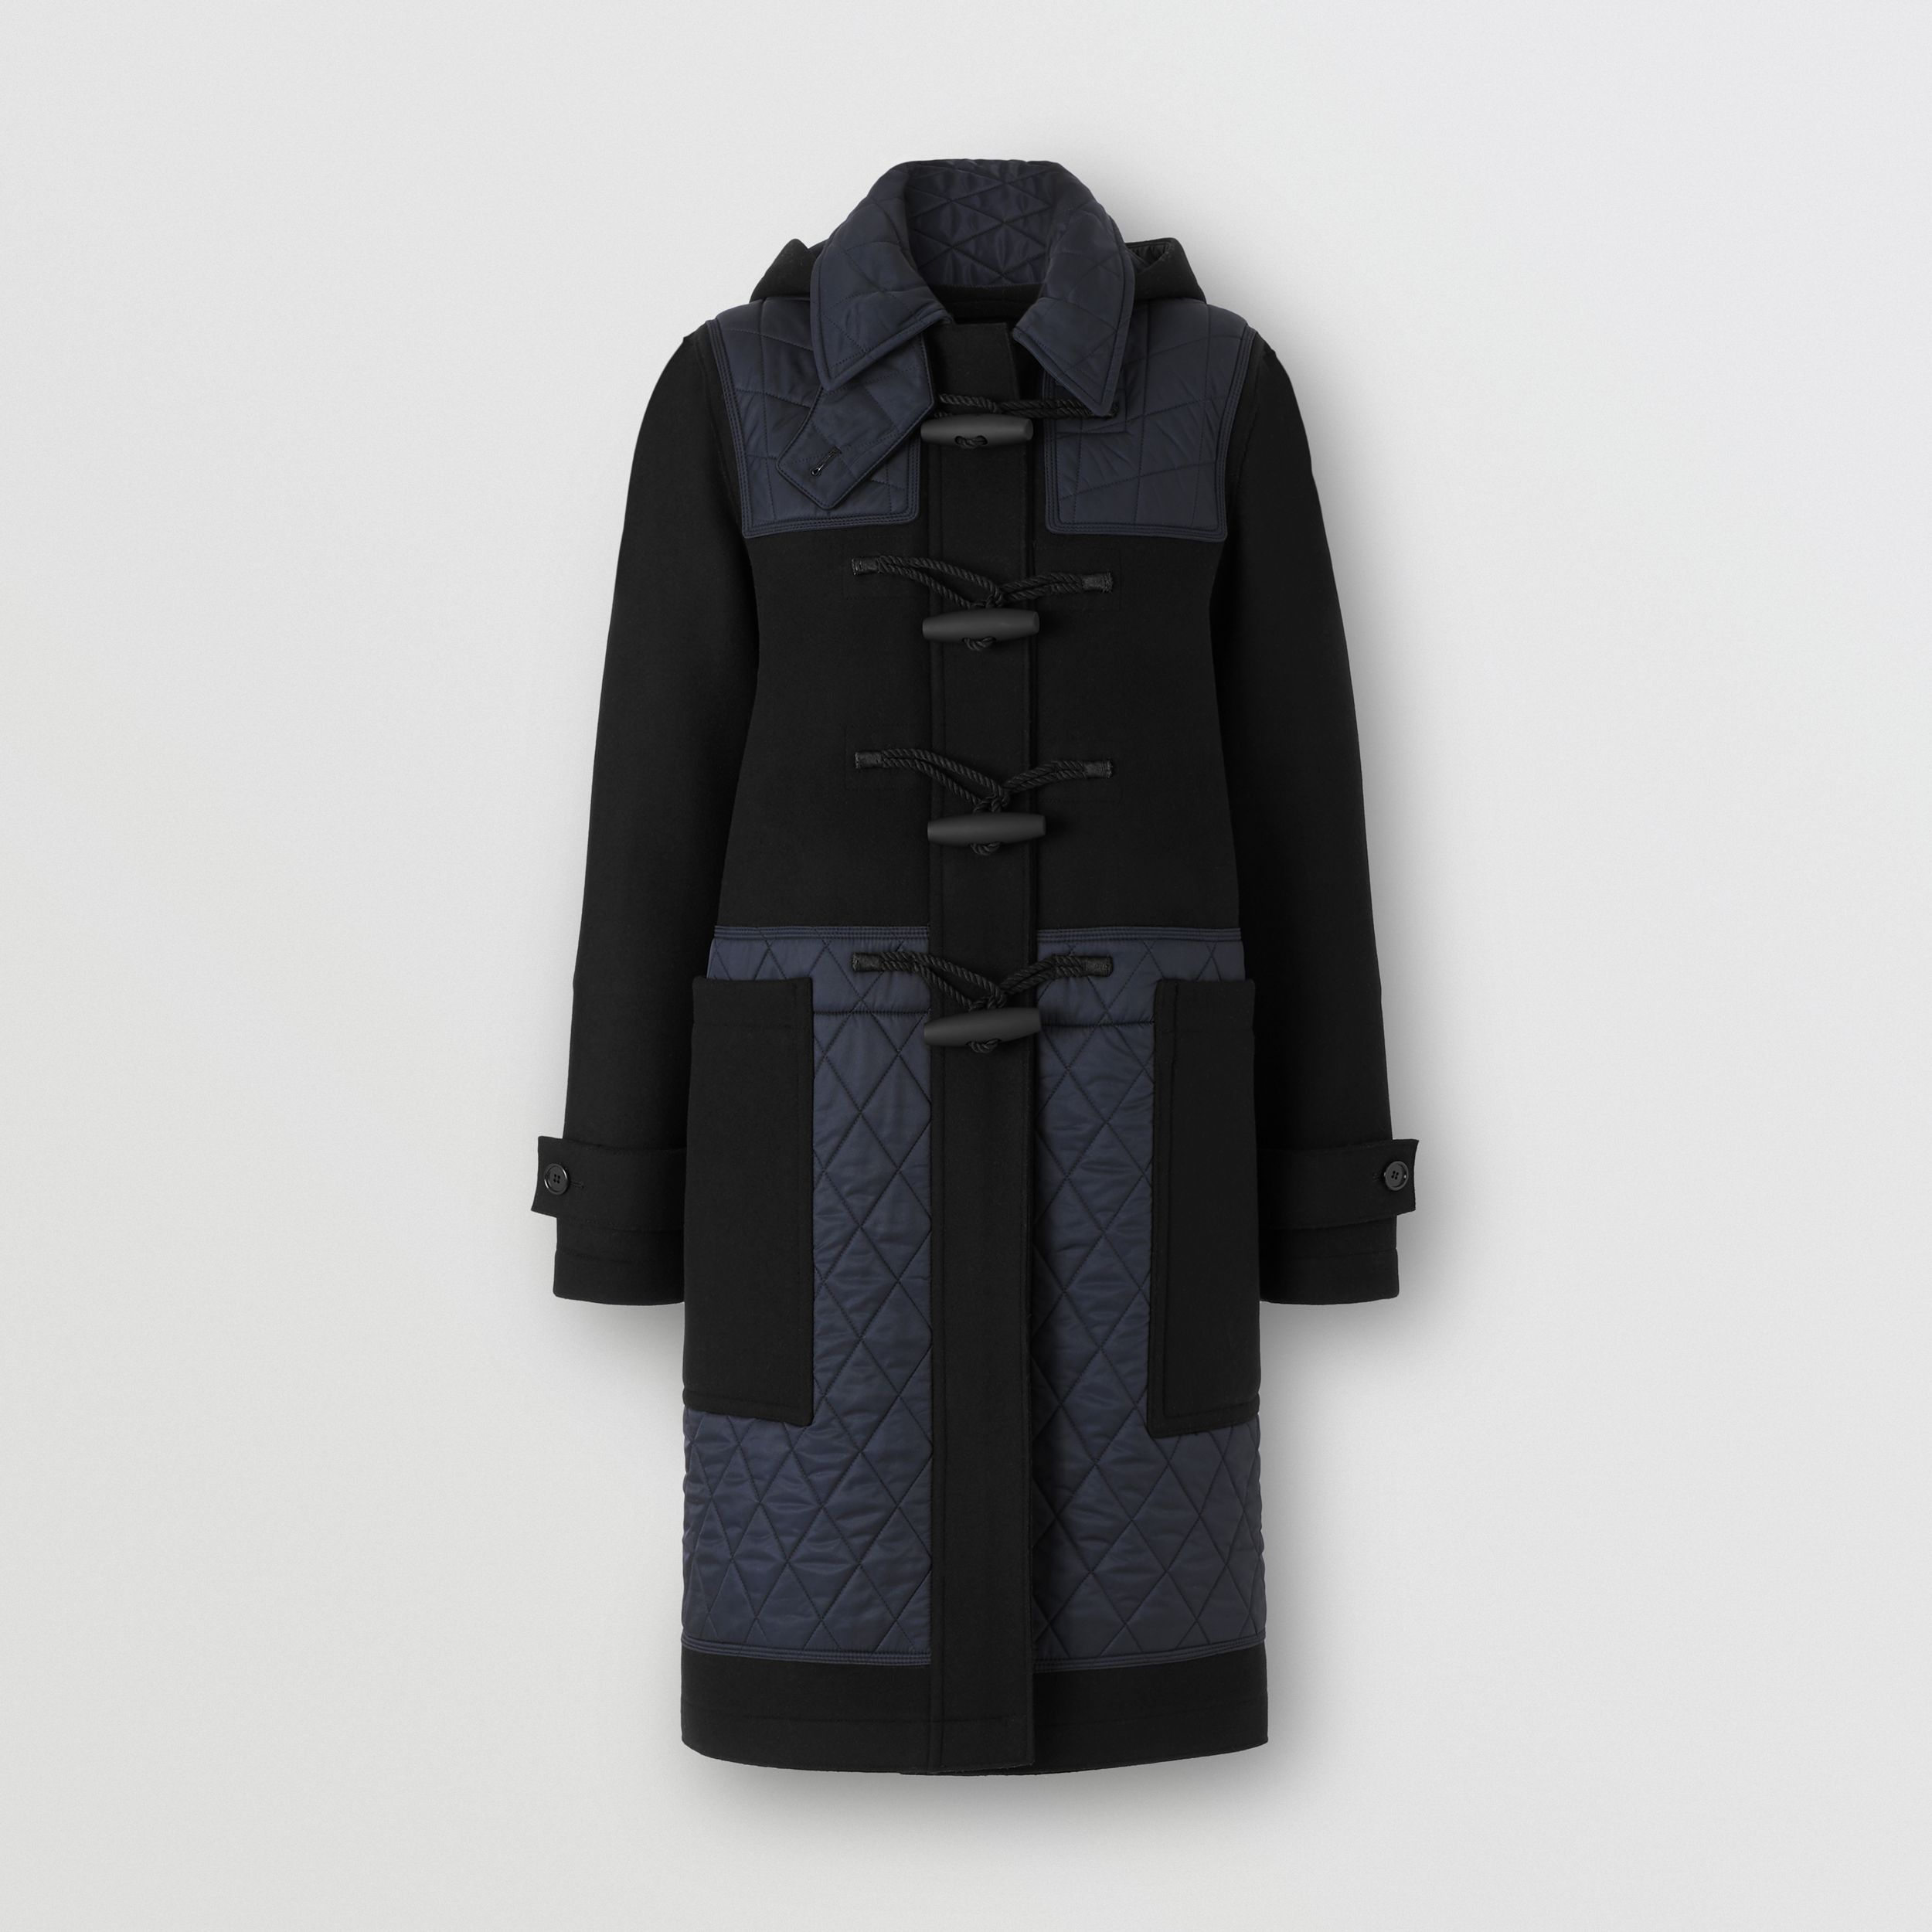 Diamond Quilted Panel Technical Wool Duffle Coat in Black - Women | Burberry - 1